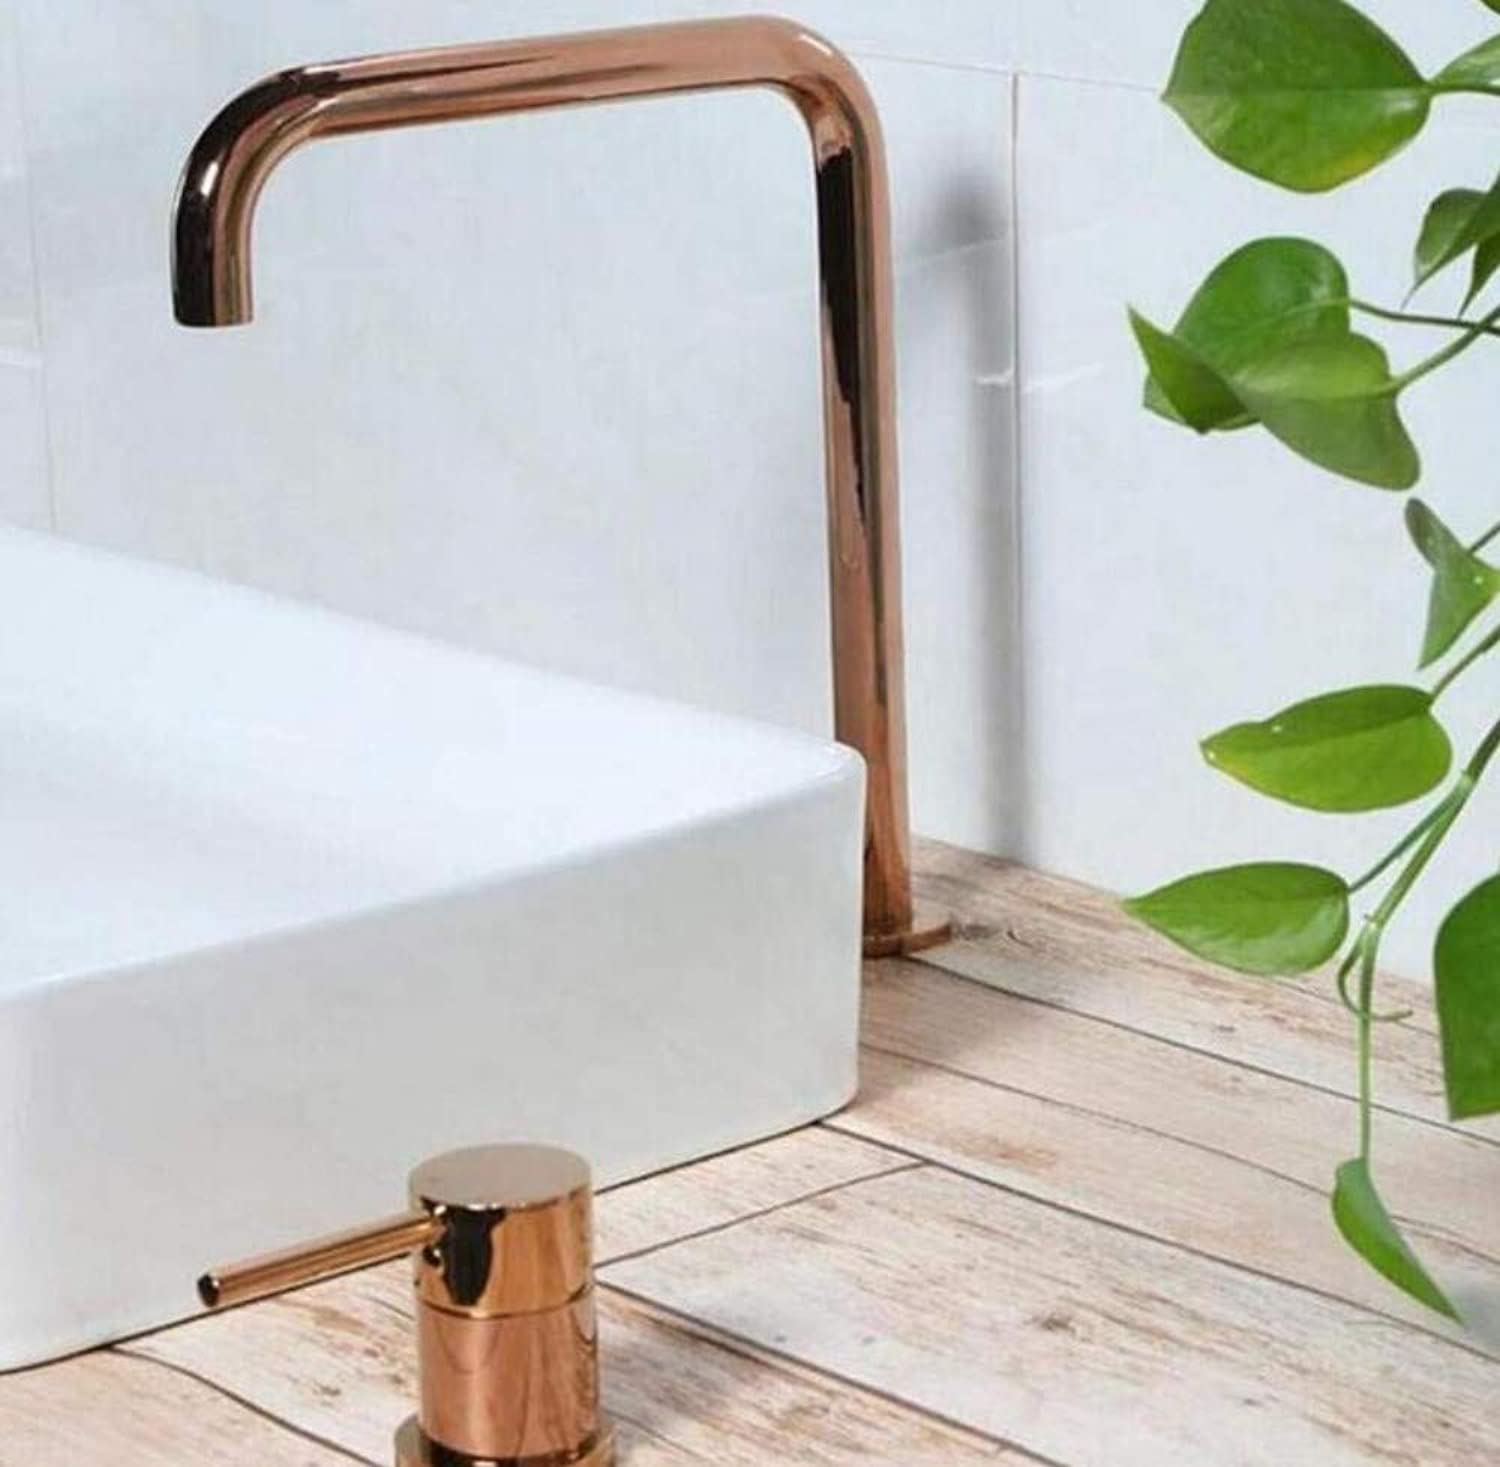 Retro Faucetcold and Hot Water Bathroom Faucet Fashion Style Tap Mixer